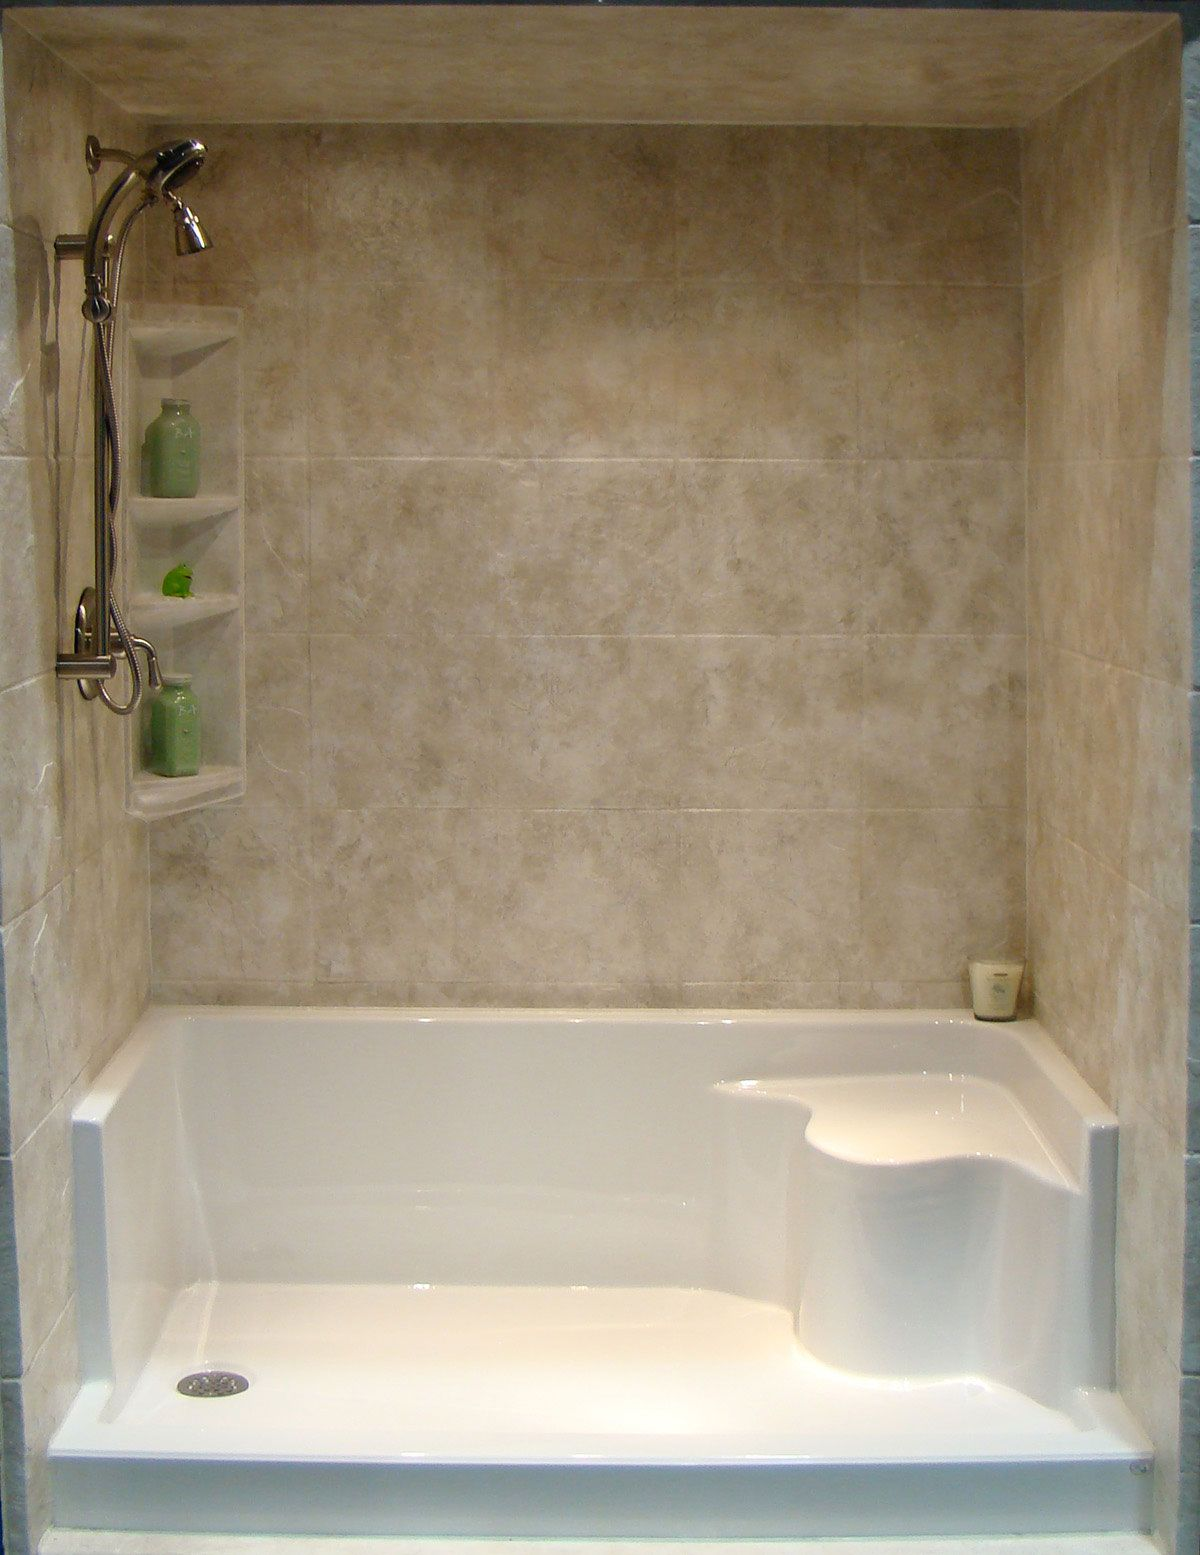 remodeling give convert call conversion your bathroom adobestock shower cost to a us tub